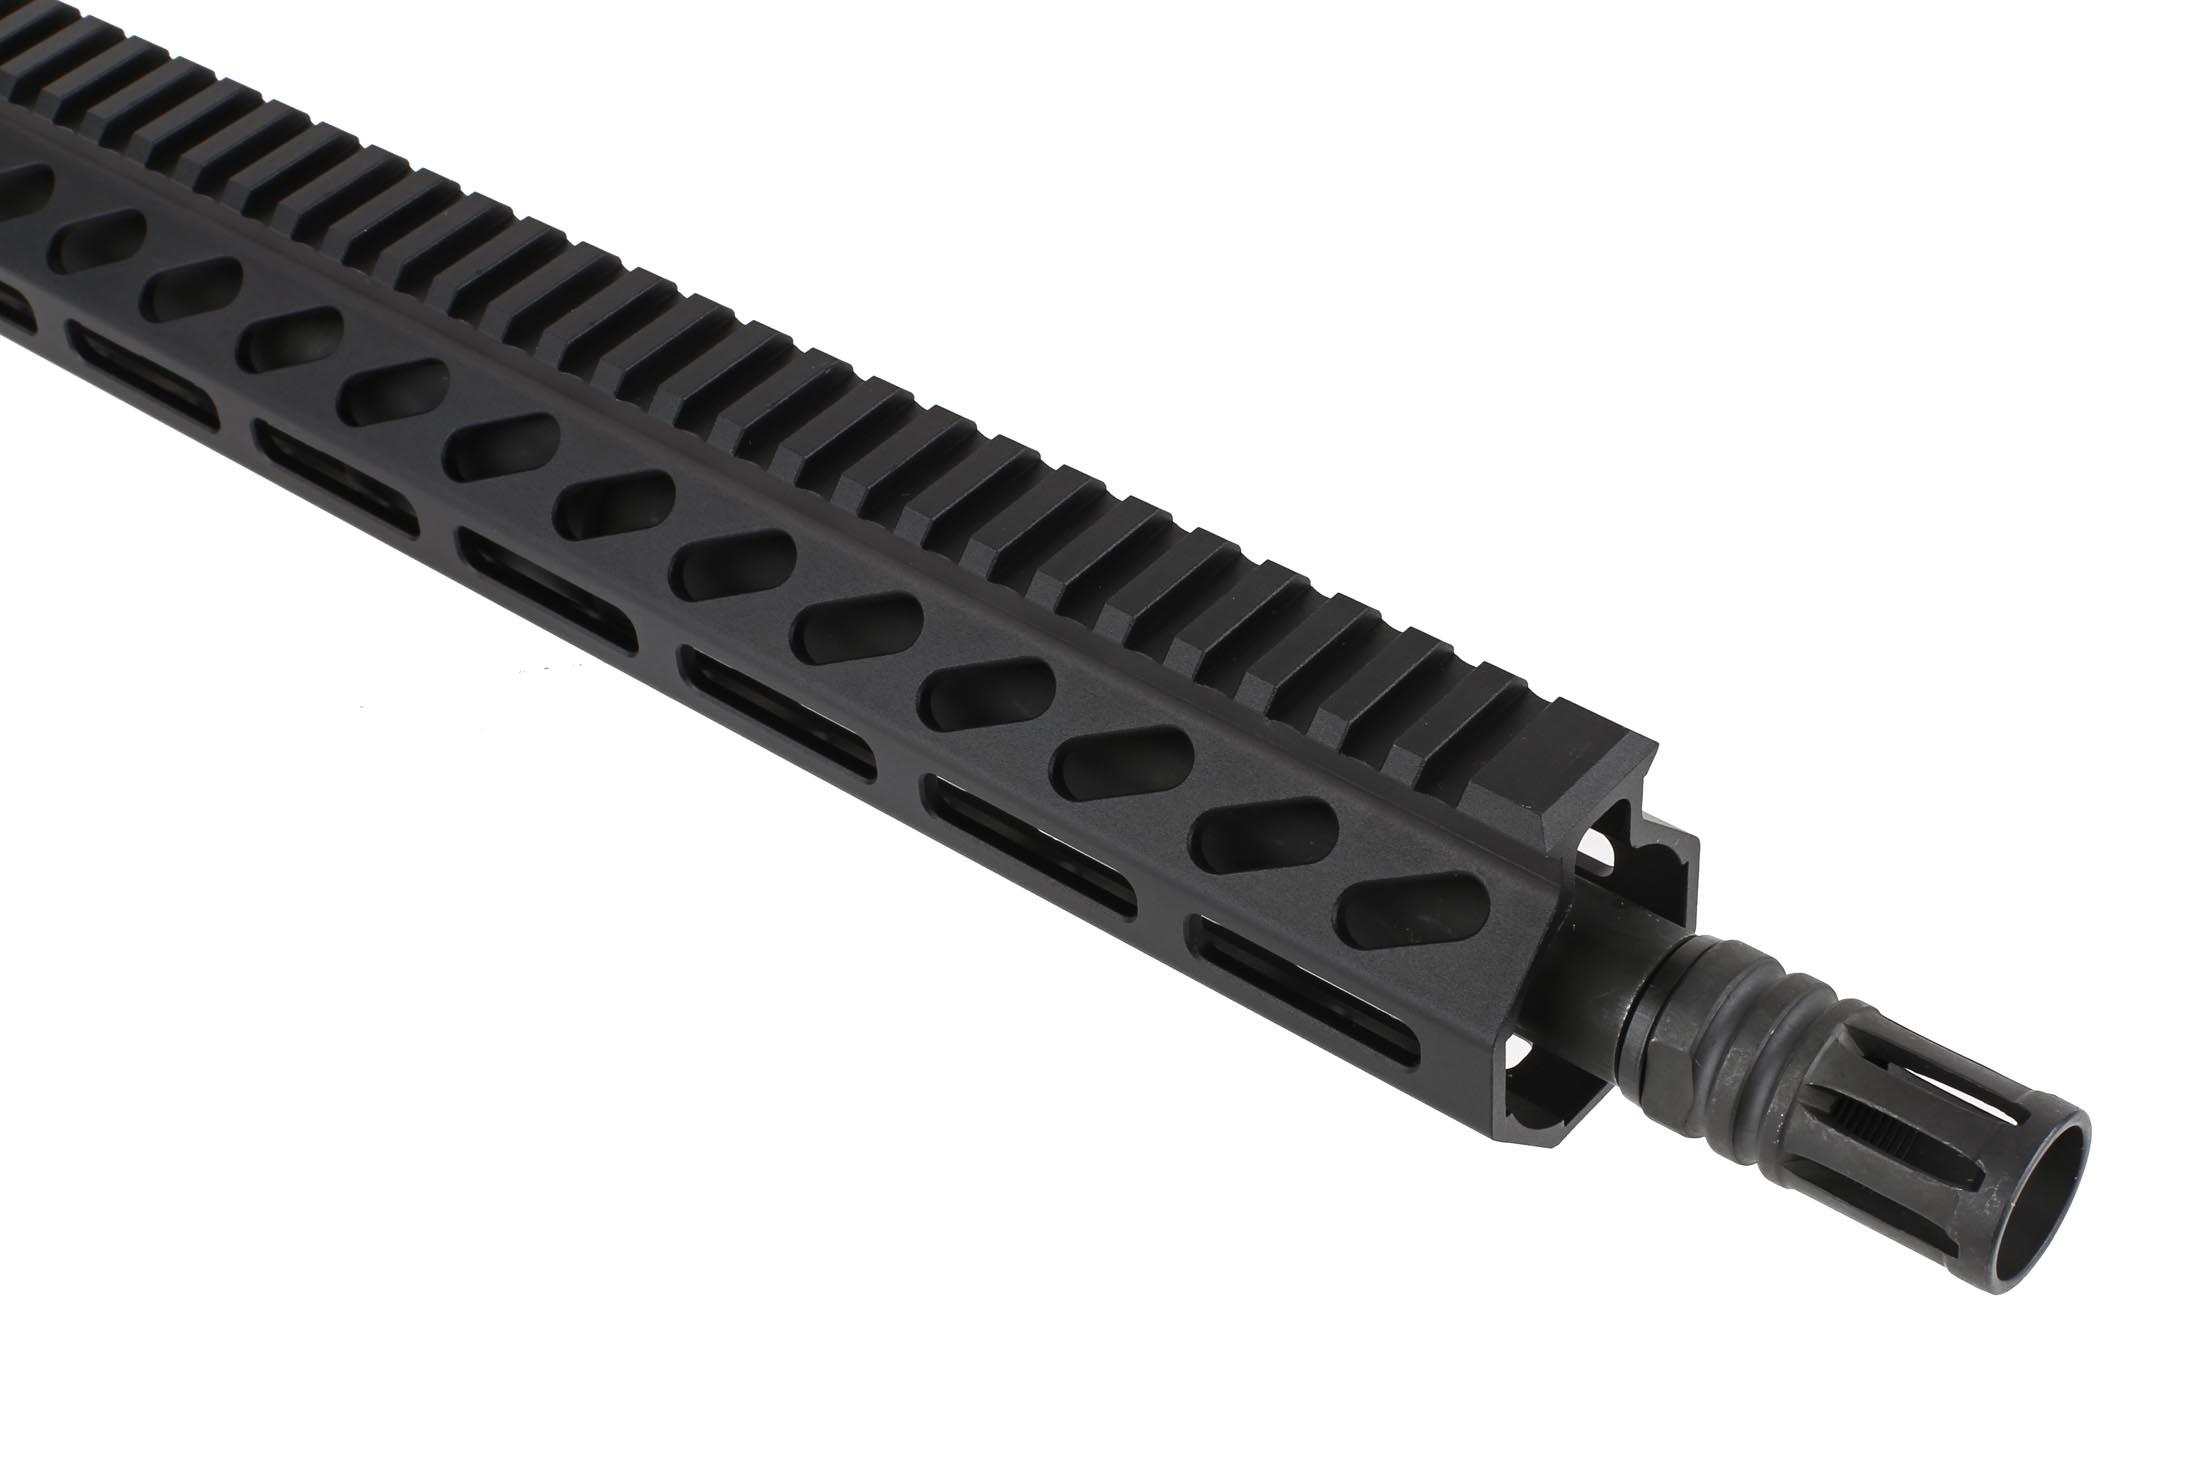 "Anderson Manufacturing 16 300 BLK 1:7 HBAR Complete Upper - 15"" Expo Arms M-LOK Rail"